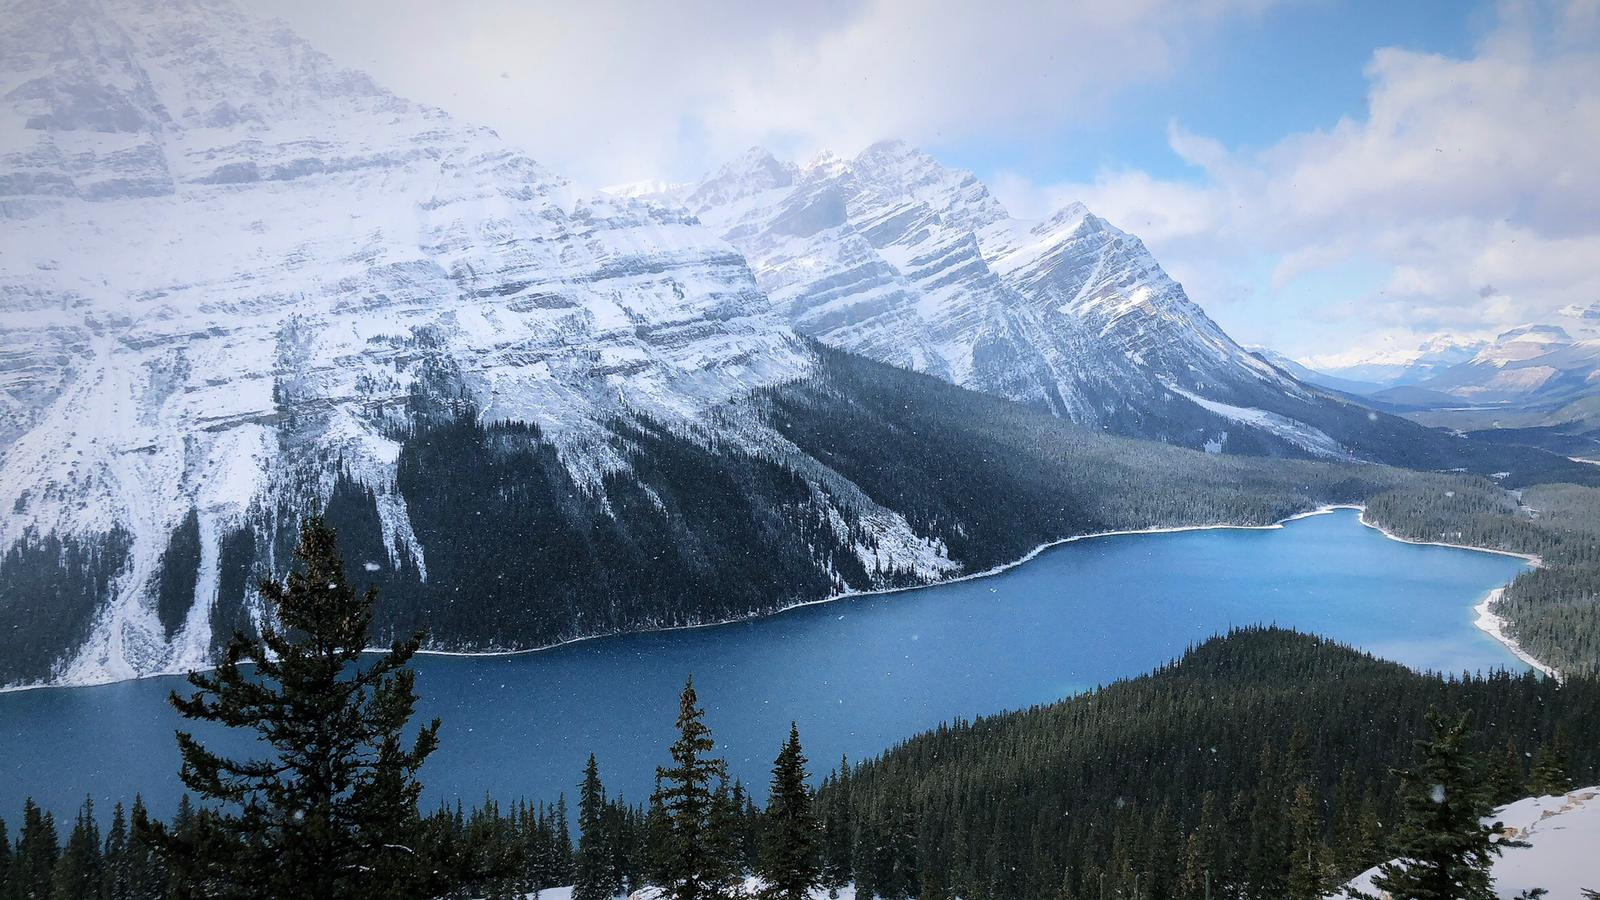 Winter magic at Peyto lake in Canada